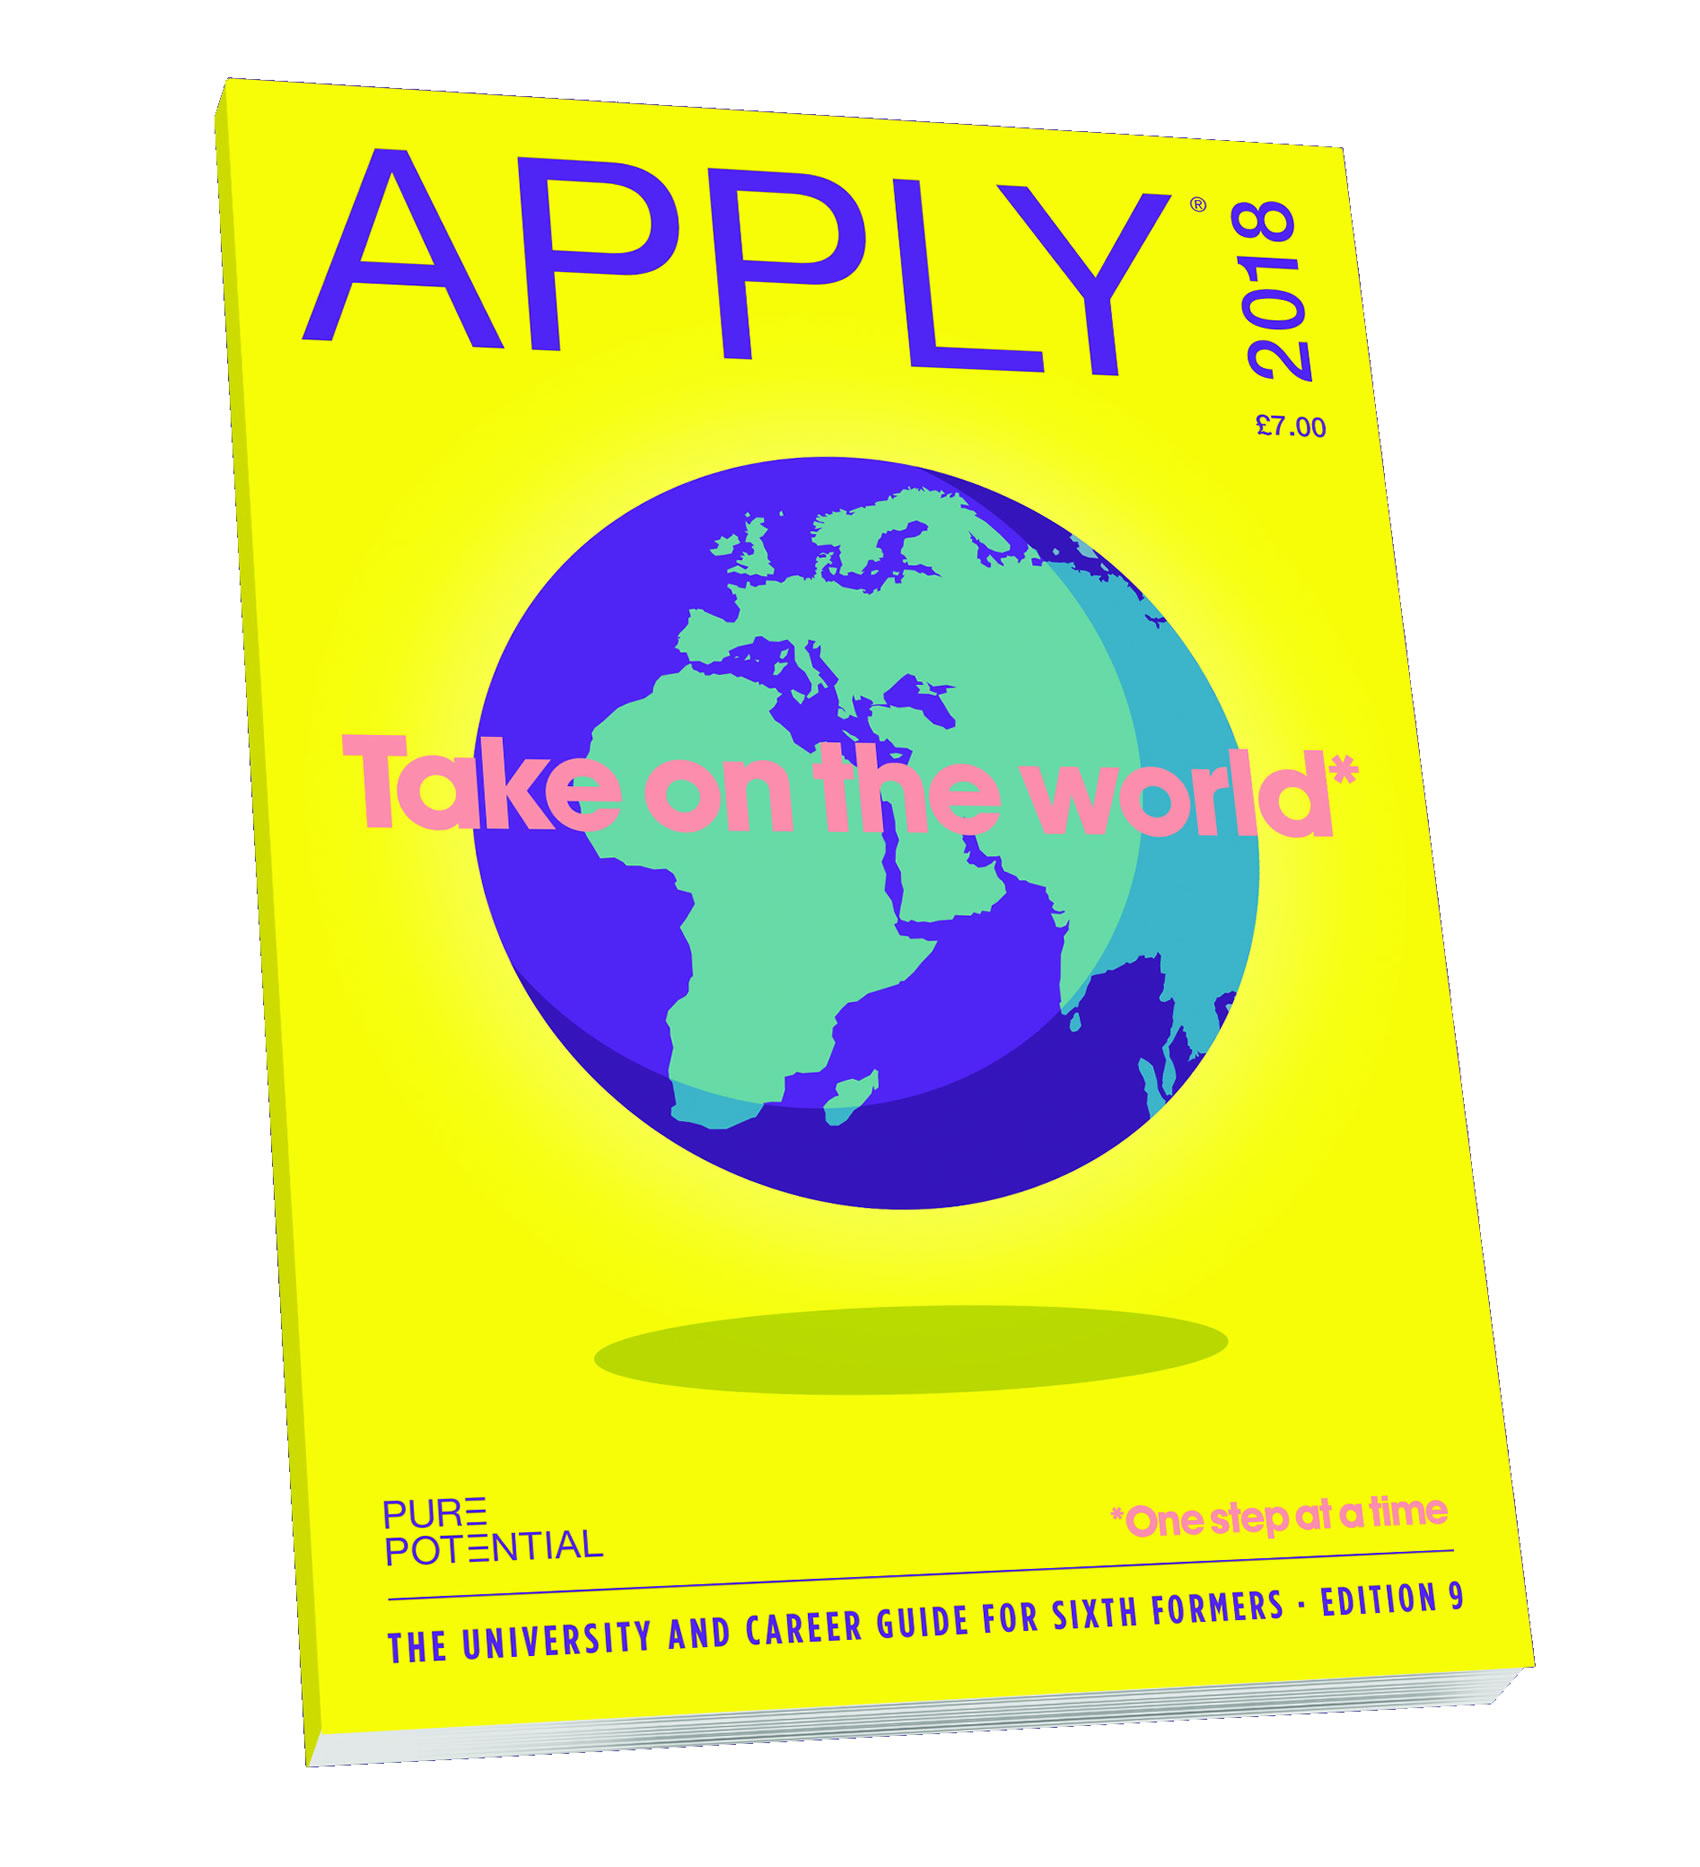 APPLY 2018 presented by Pure Potential